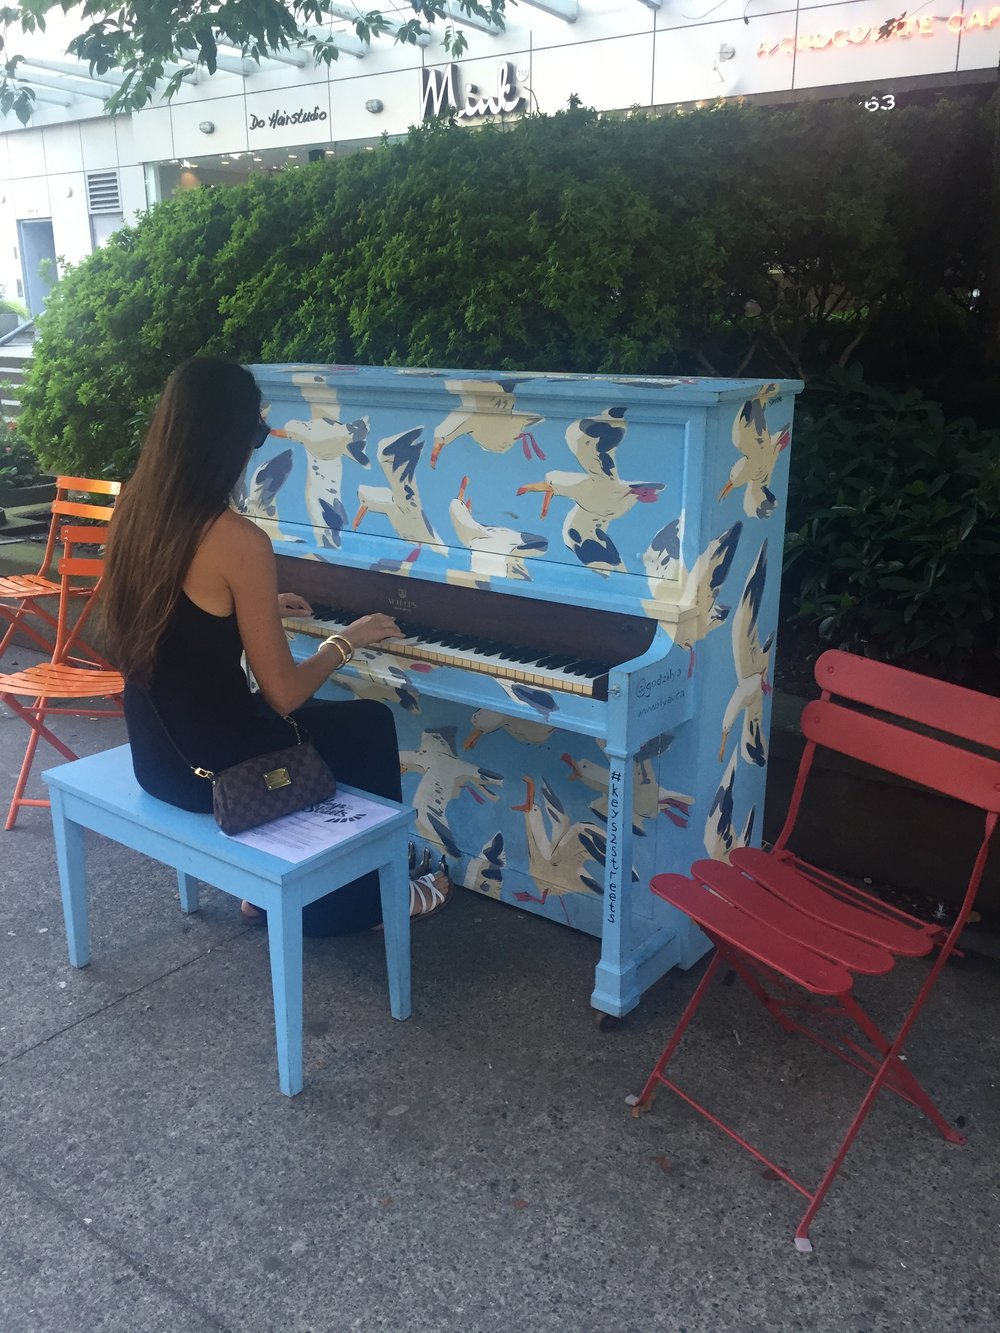 Free pianos to play around the city? Another reason why VanCity is the coolest.